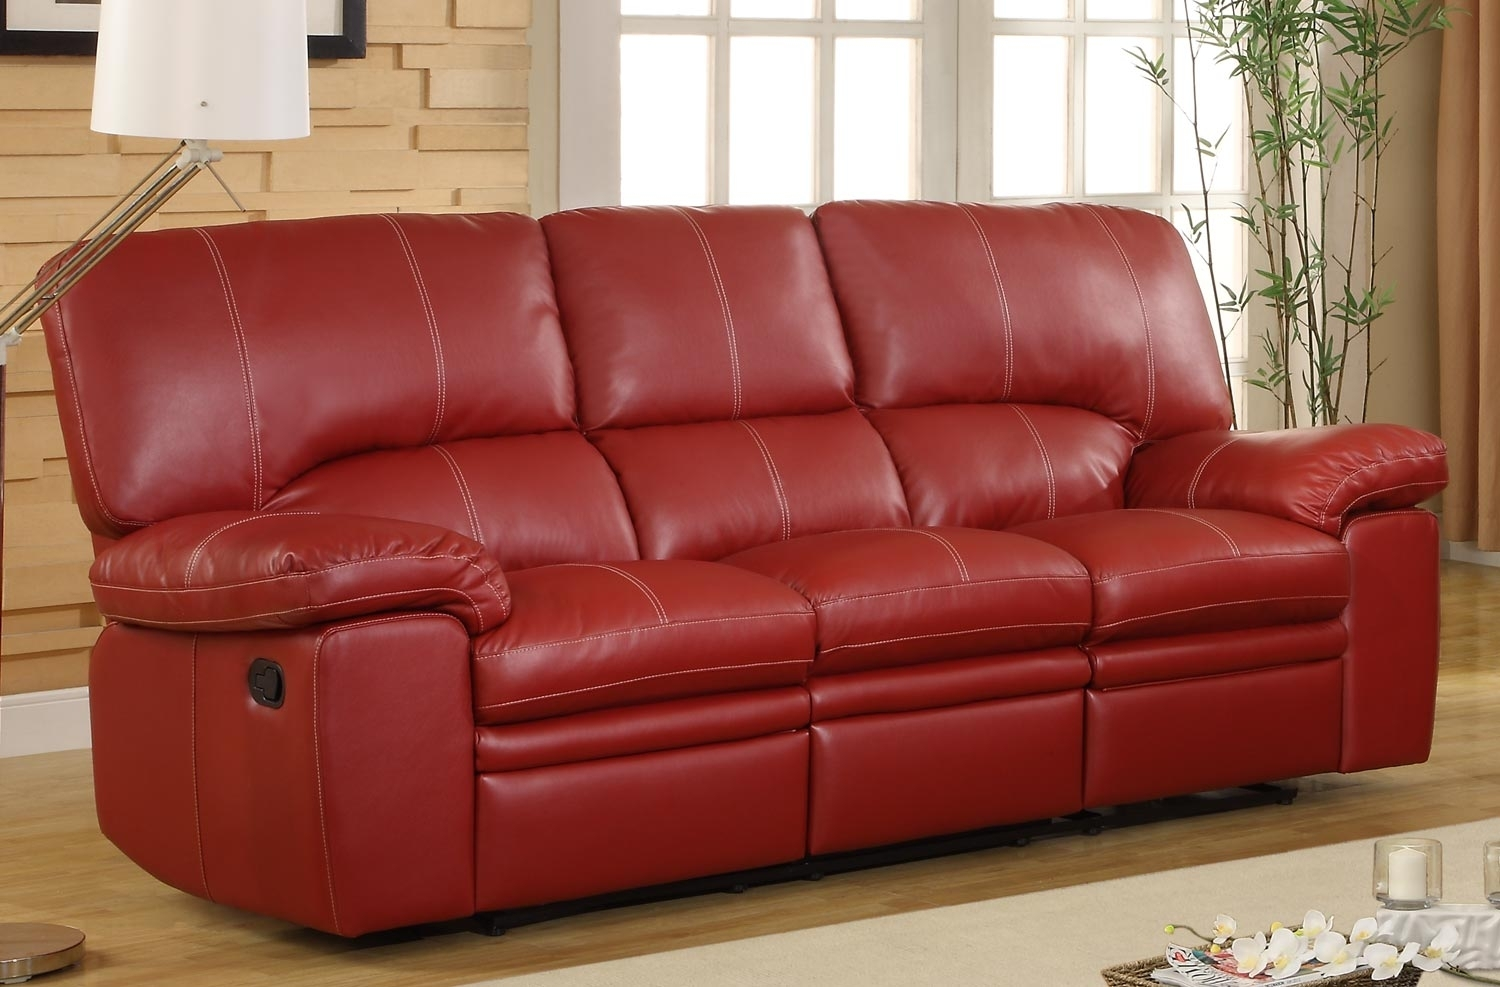 Inspirational Red Leather Reclining Sofa 79 For Office Sofa Ideas Pertaining To Red Leather Reclining Sofas And Loveseats (View 10 of 10)